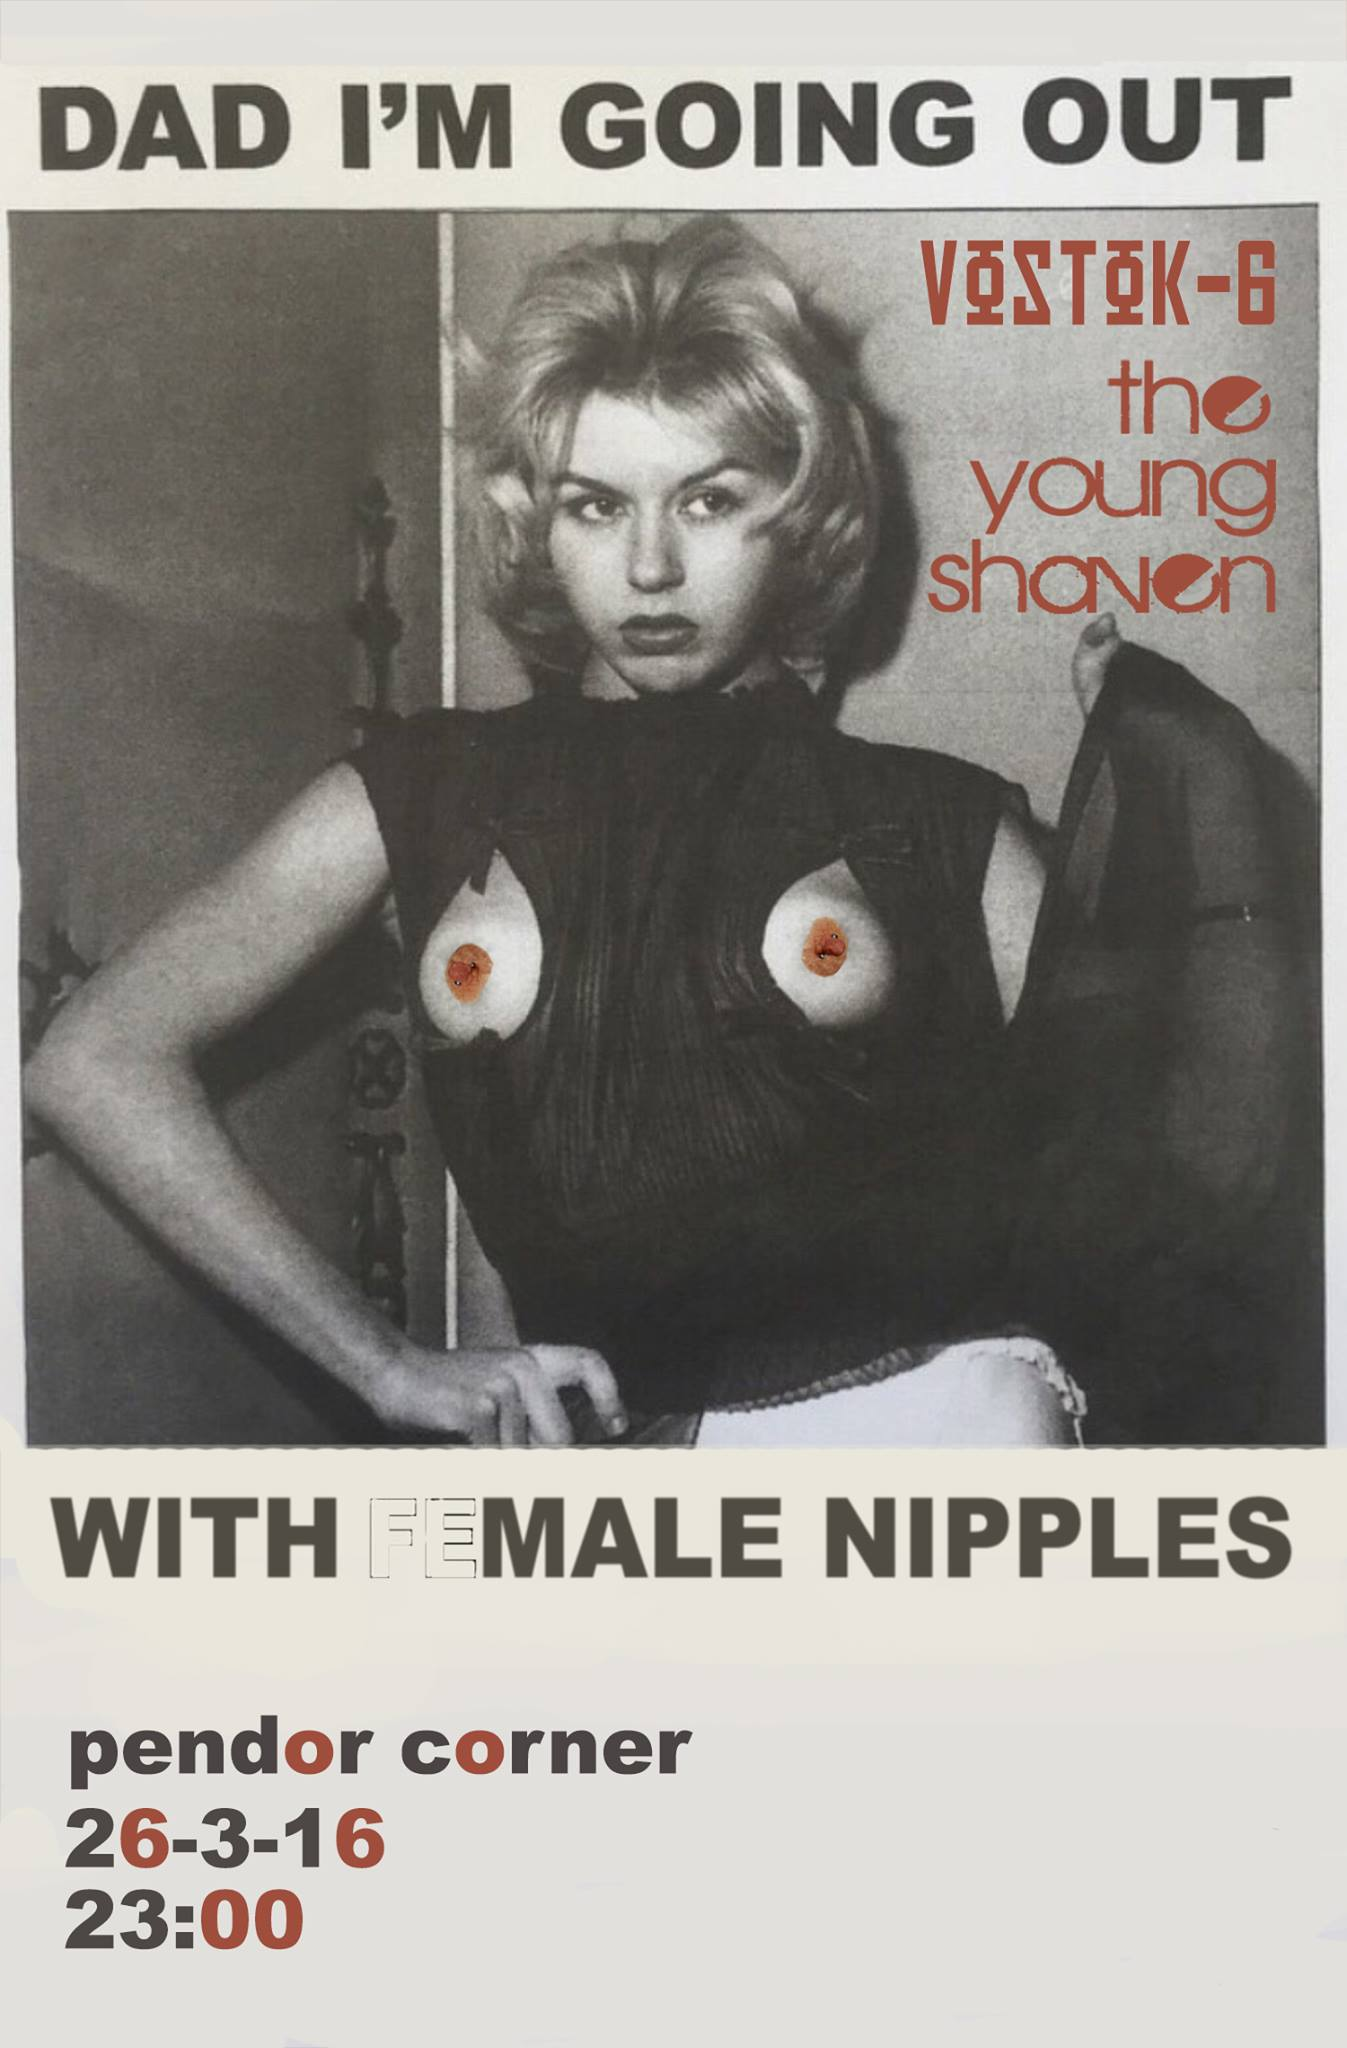 The Young Shaven Dad I'm going out with male nipples Poster